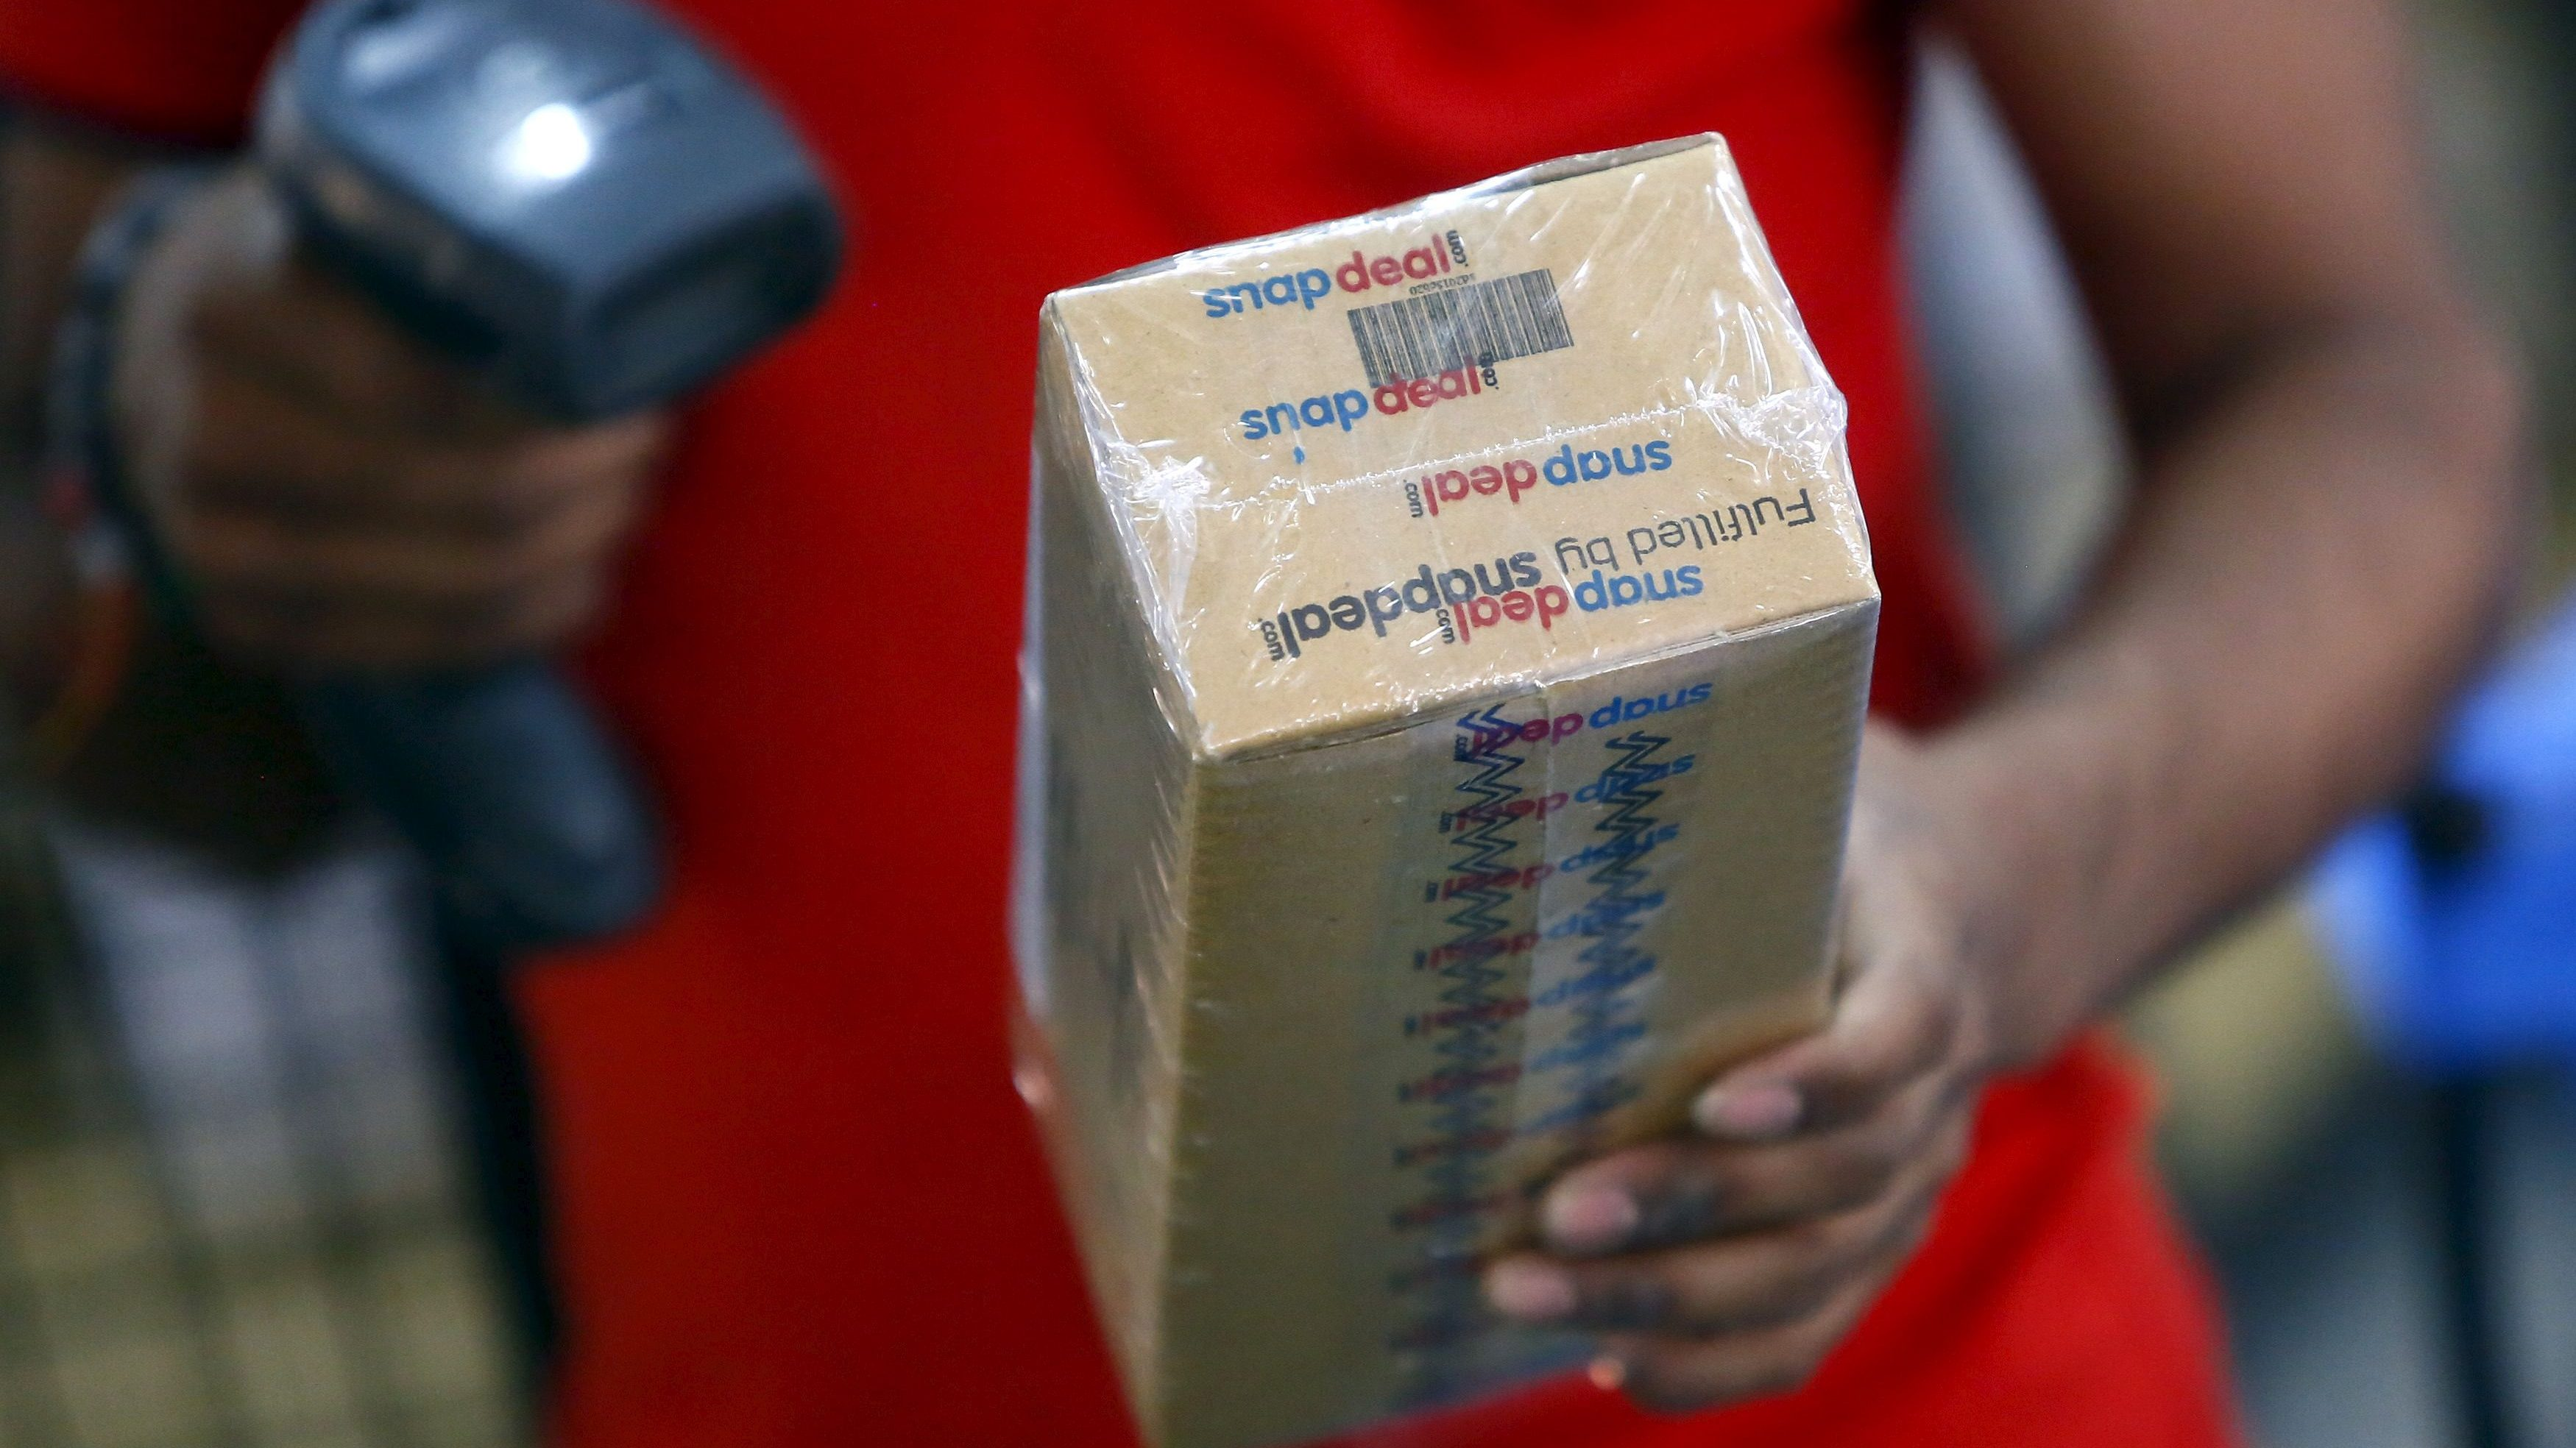 A worker of  Indian e-commerce company Snapdeal.com scans barcode on a box after it was packed at the company's warehouse in New Delhi April 20, 2015. After losing top engineering talent for years to America's tech heartland of Silicon Valley, India is luring them back as an e-commerce boom sparks a thriving start-up culture, unprecedented pay, and perks including free healthcare for in-laws. Picture taken April 20, 2015. To match INDIA-ECOMMERCE/WORKERS. REUTERS/Anindito Mukherjee - GF10000082309